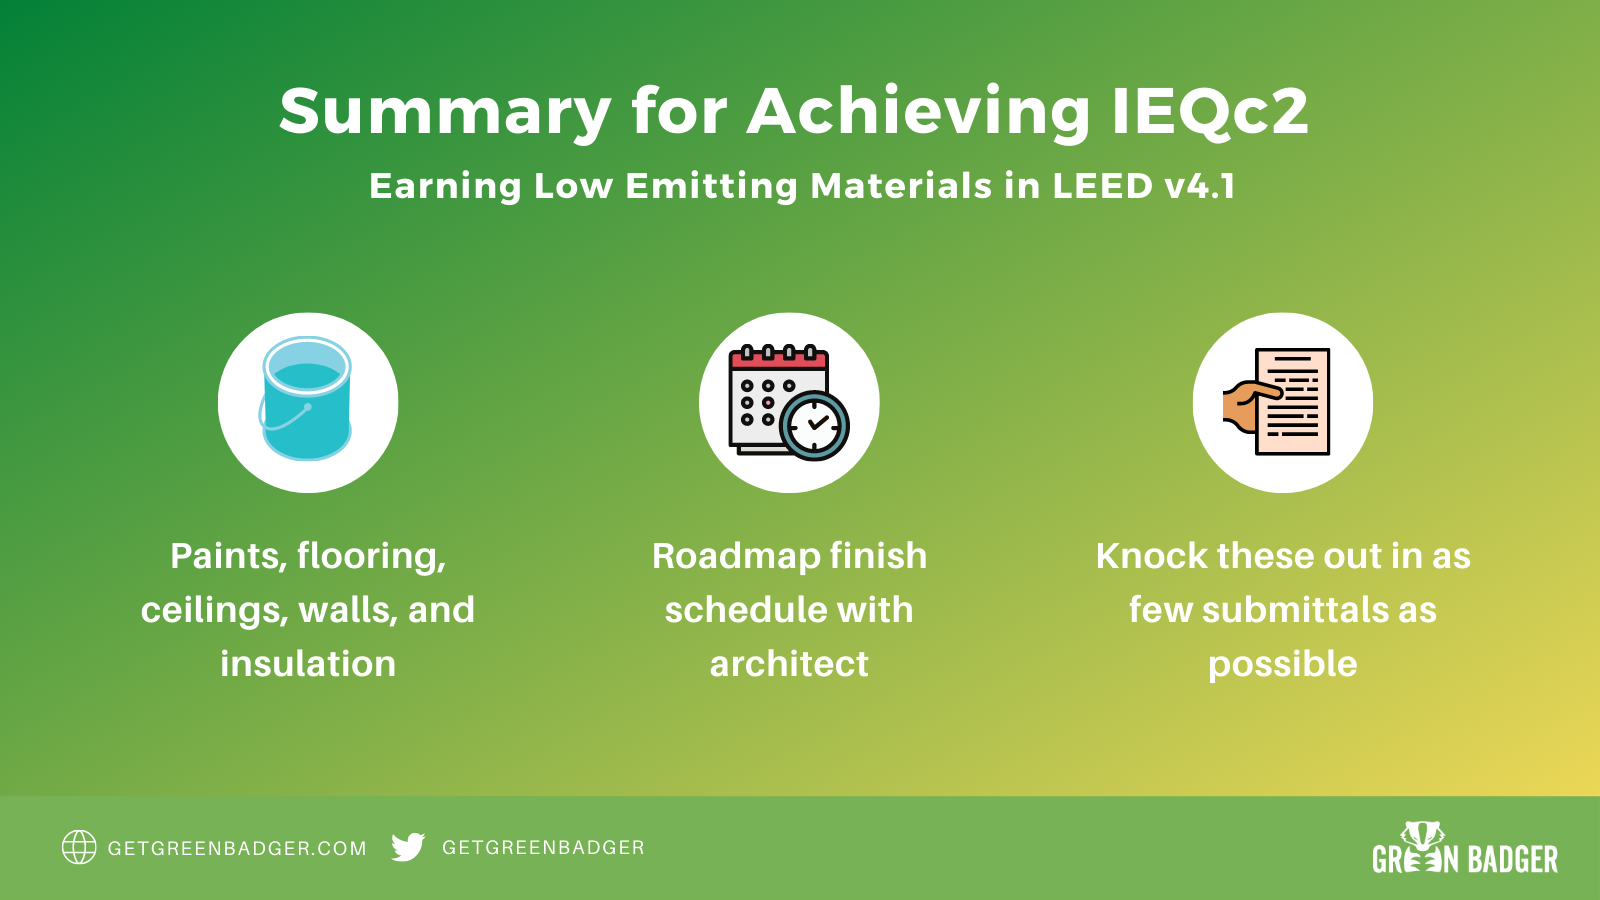 ultimate guide to leed v4.1 summary stratgies for ieqc2